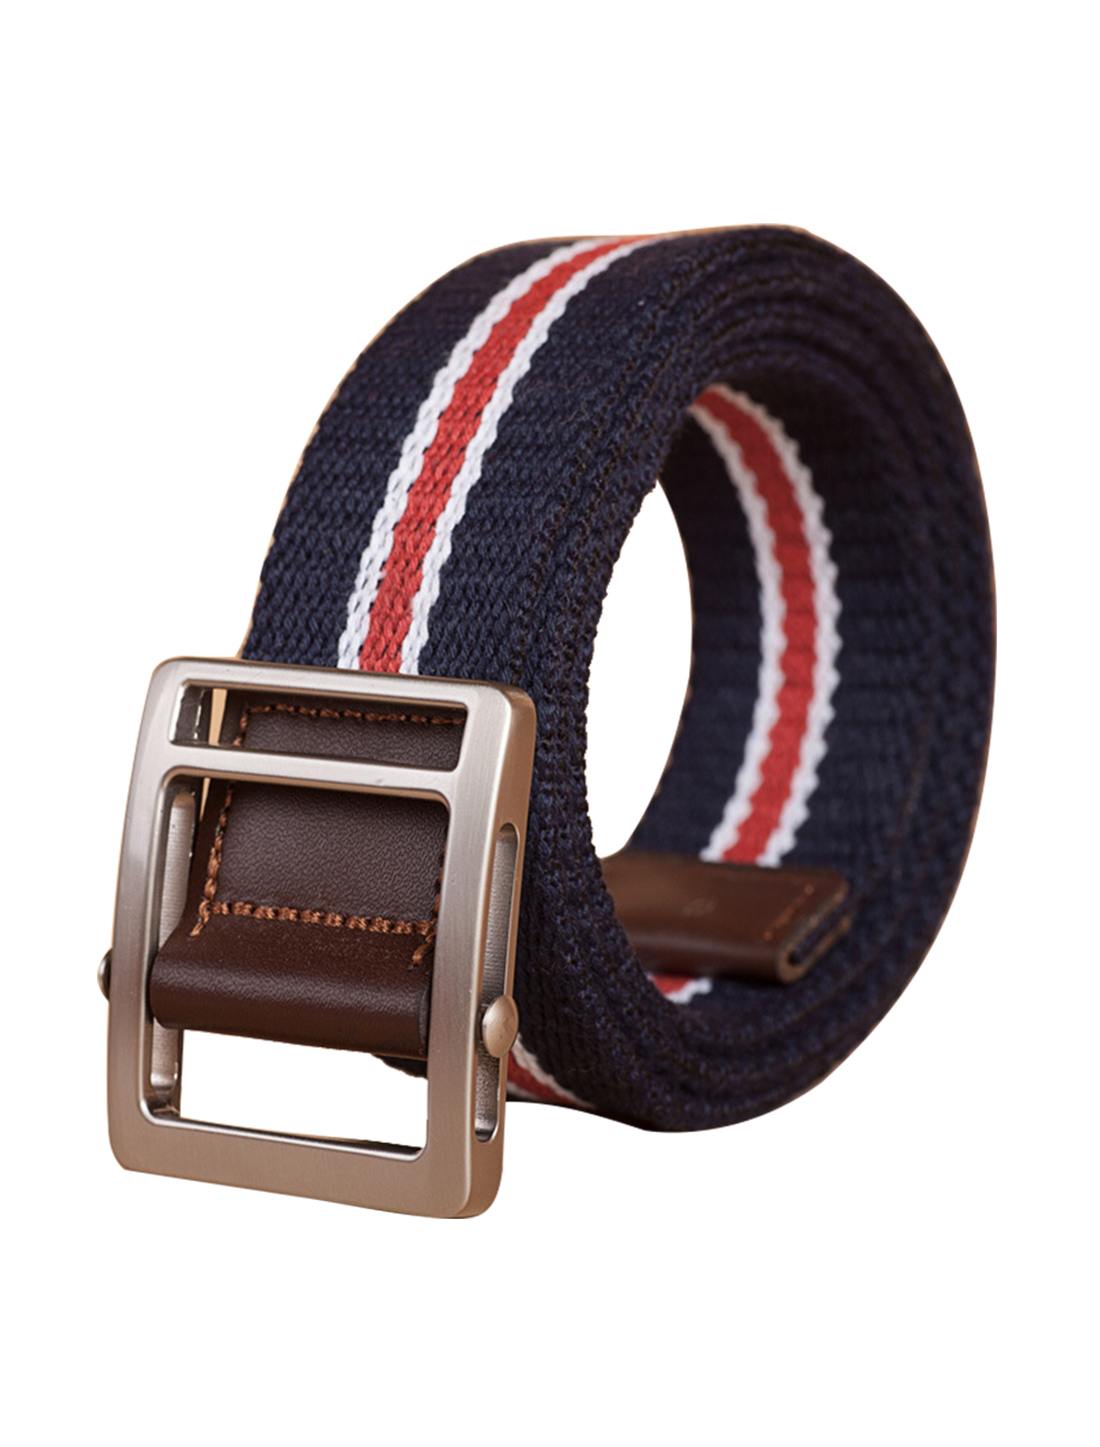 "Unisex Leather Paneled Canvas Striped Slide Buckle Belt Width 1 5/8"" Navy Blue"